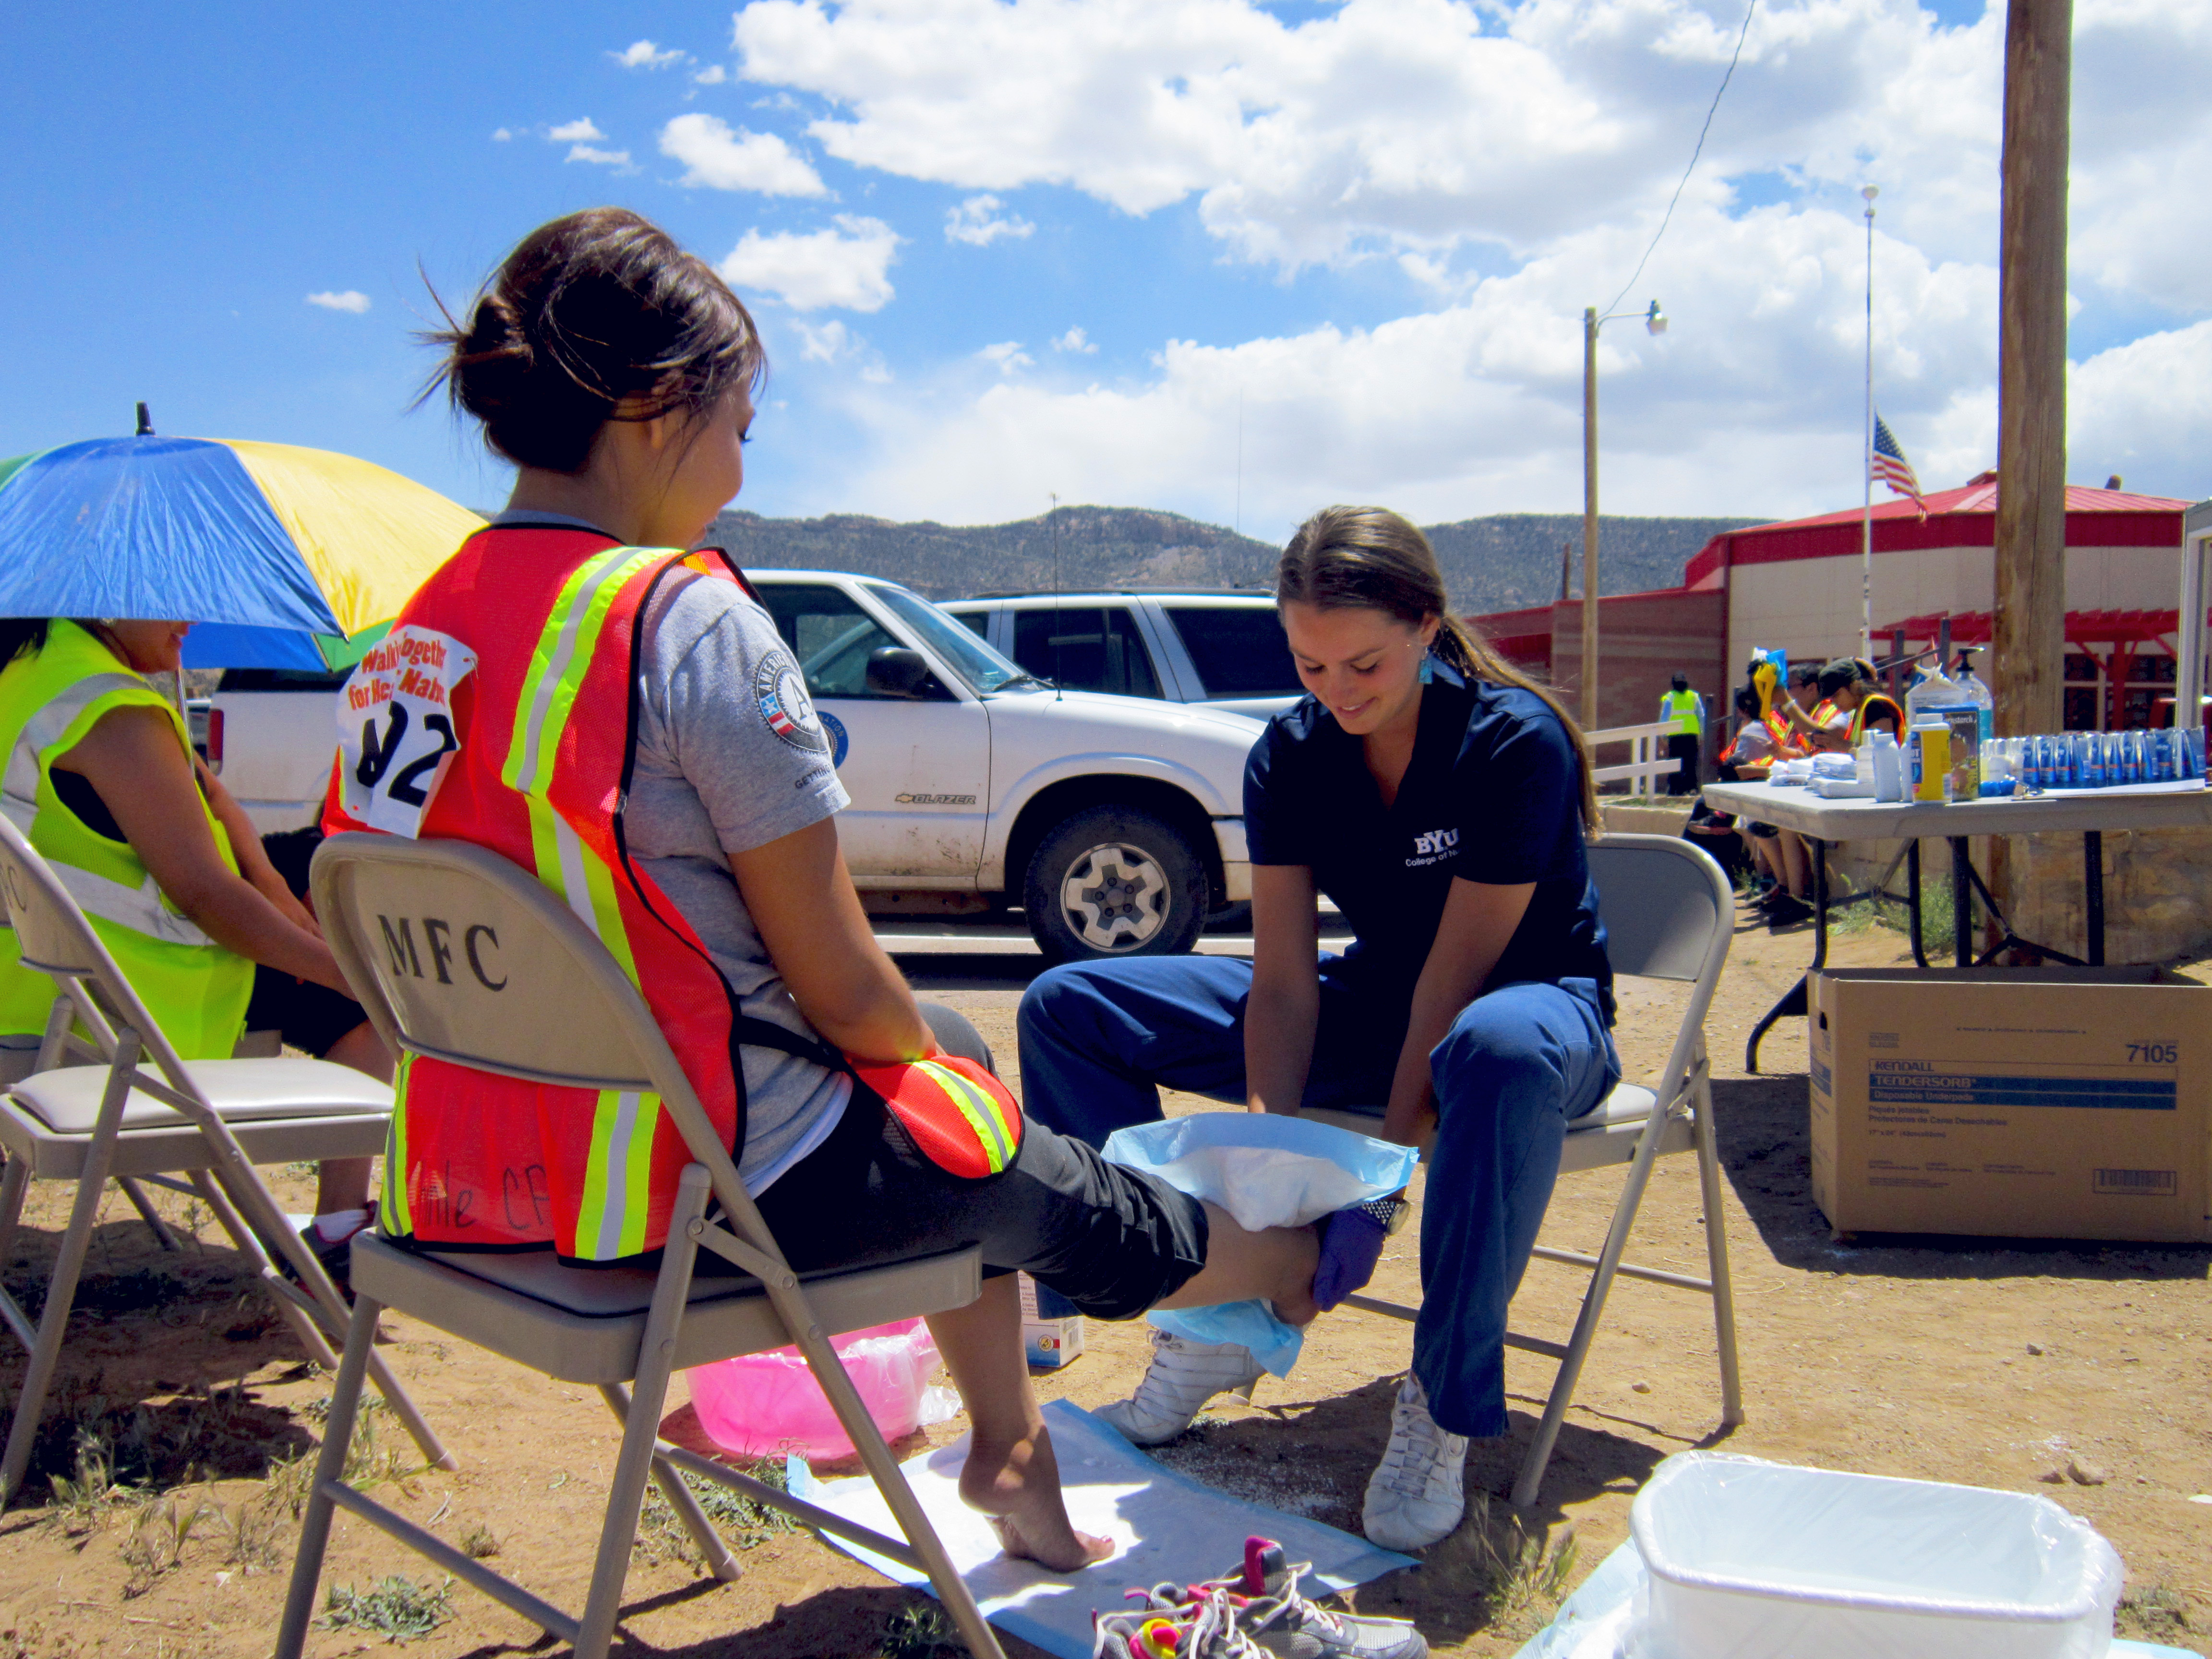 Student nurse providing foot care for a Navajo woman participating in Diabetes Awareness Walk